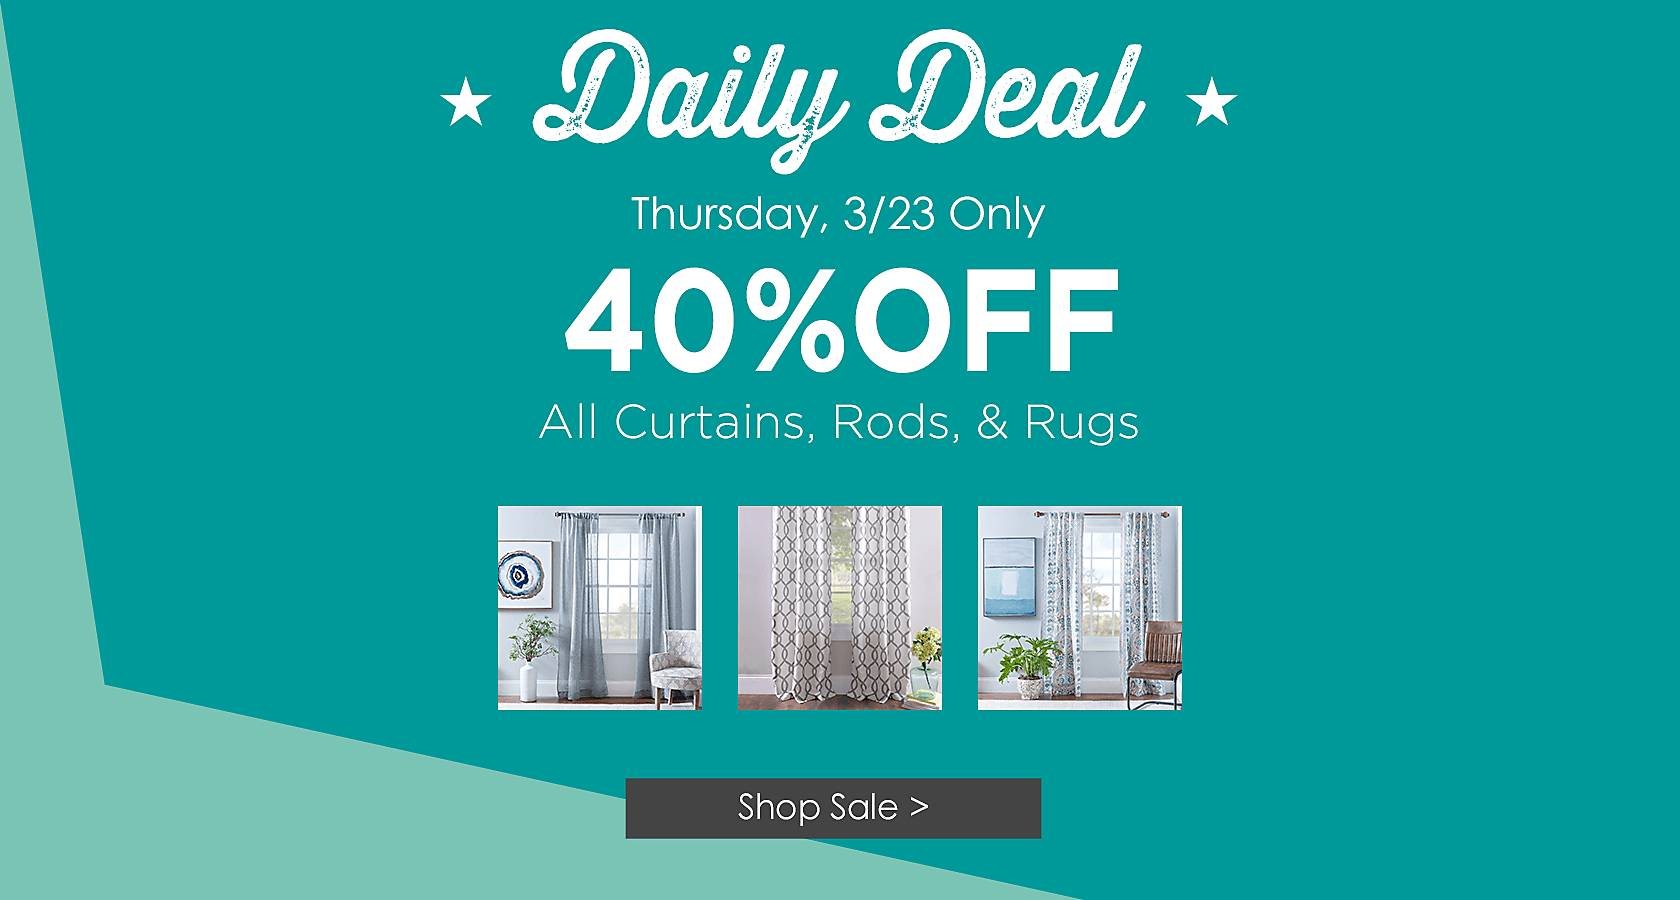 Daily Deal, Thursday Only - 40% Off All Curtains, Rods and Rugs - Shop Now